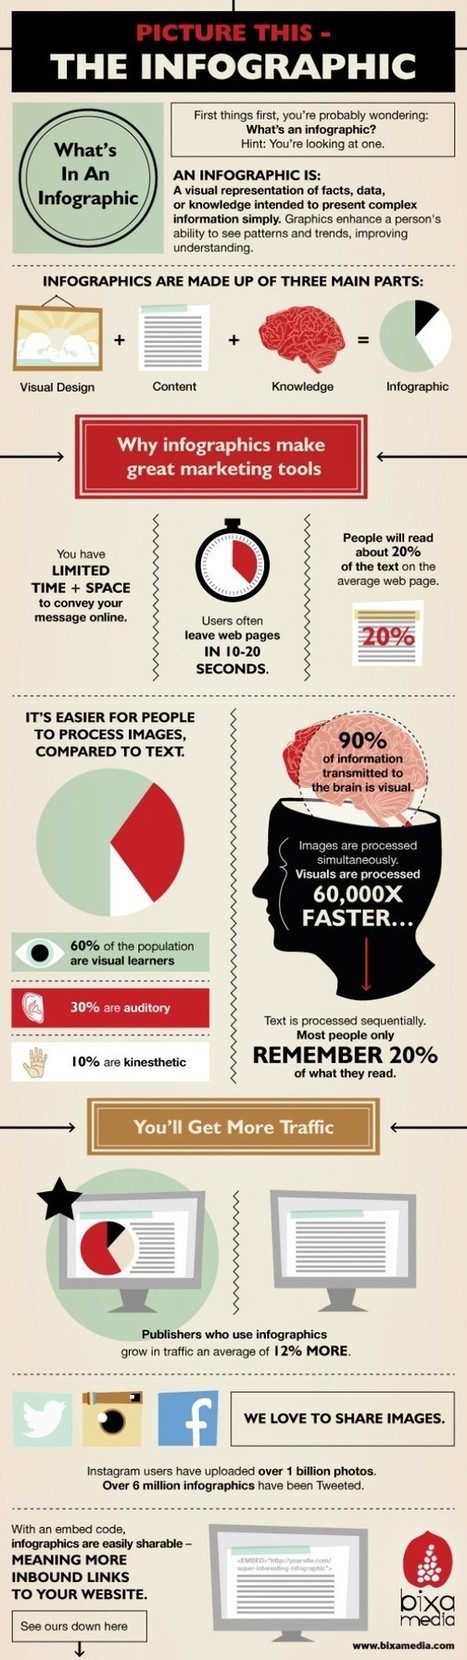 An Infographic About Infographics | :: The 4th Era :: | Scoop.it